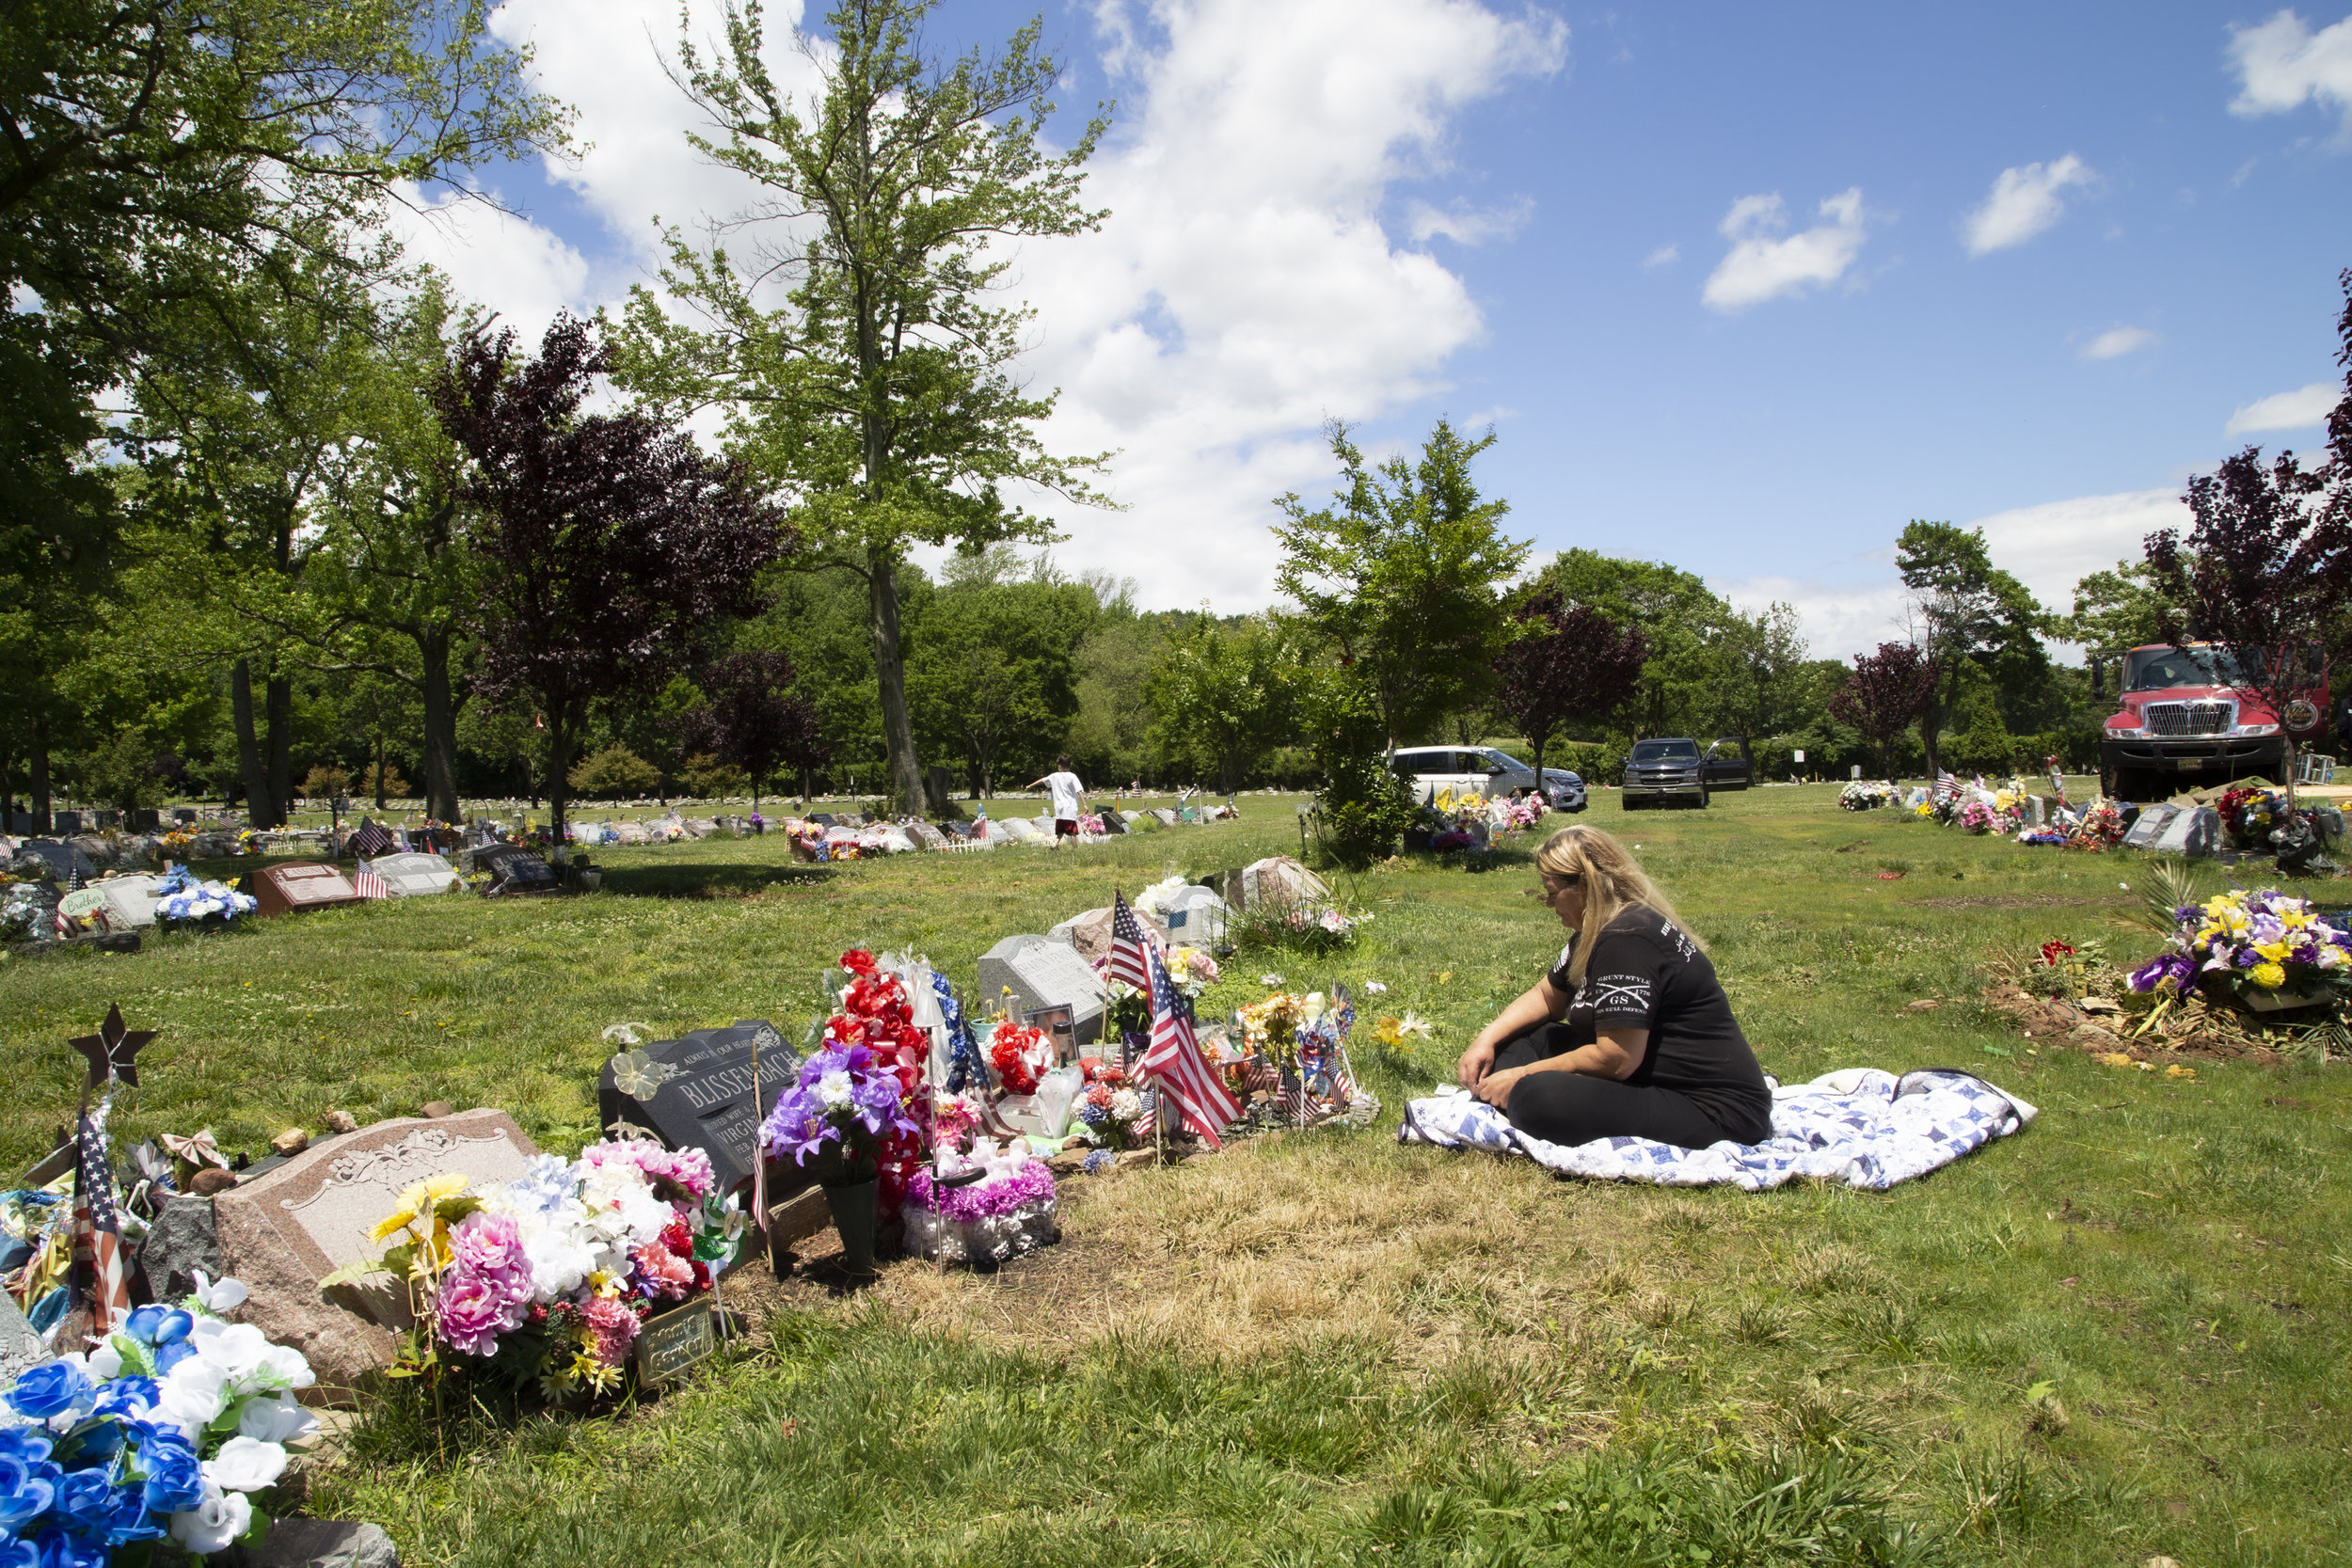 Sandra King visits her son John King's grave at Moravian Cemetery two years after he took his own life. John King was an Army Veteran who struggled with PTSD and opioid addiction.